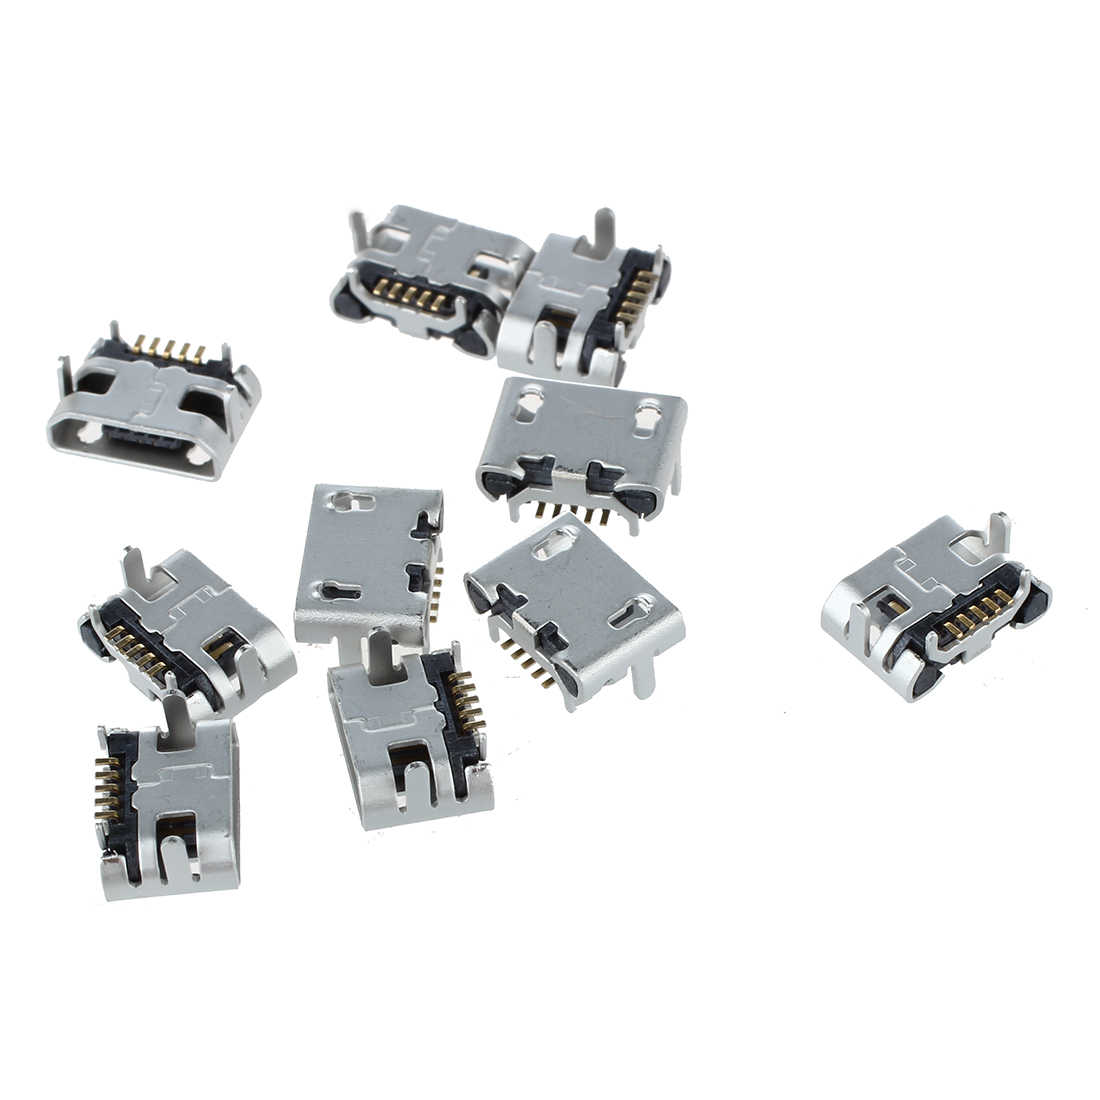 JFBL Hot  10 Pcs Type B Micro USB Female 5 Pin Jack Port Socket Connector Repair Parts